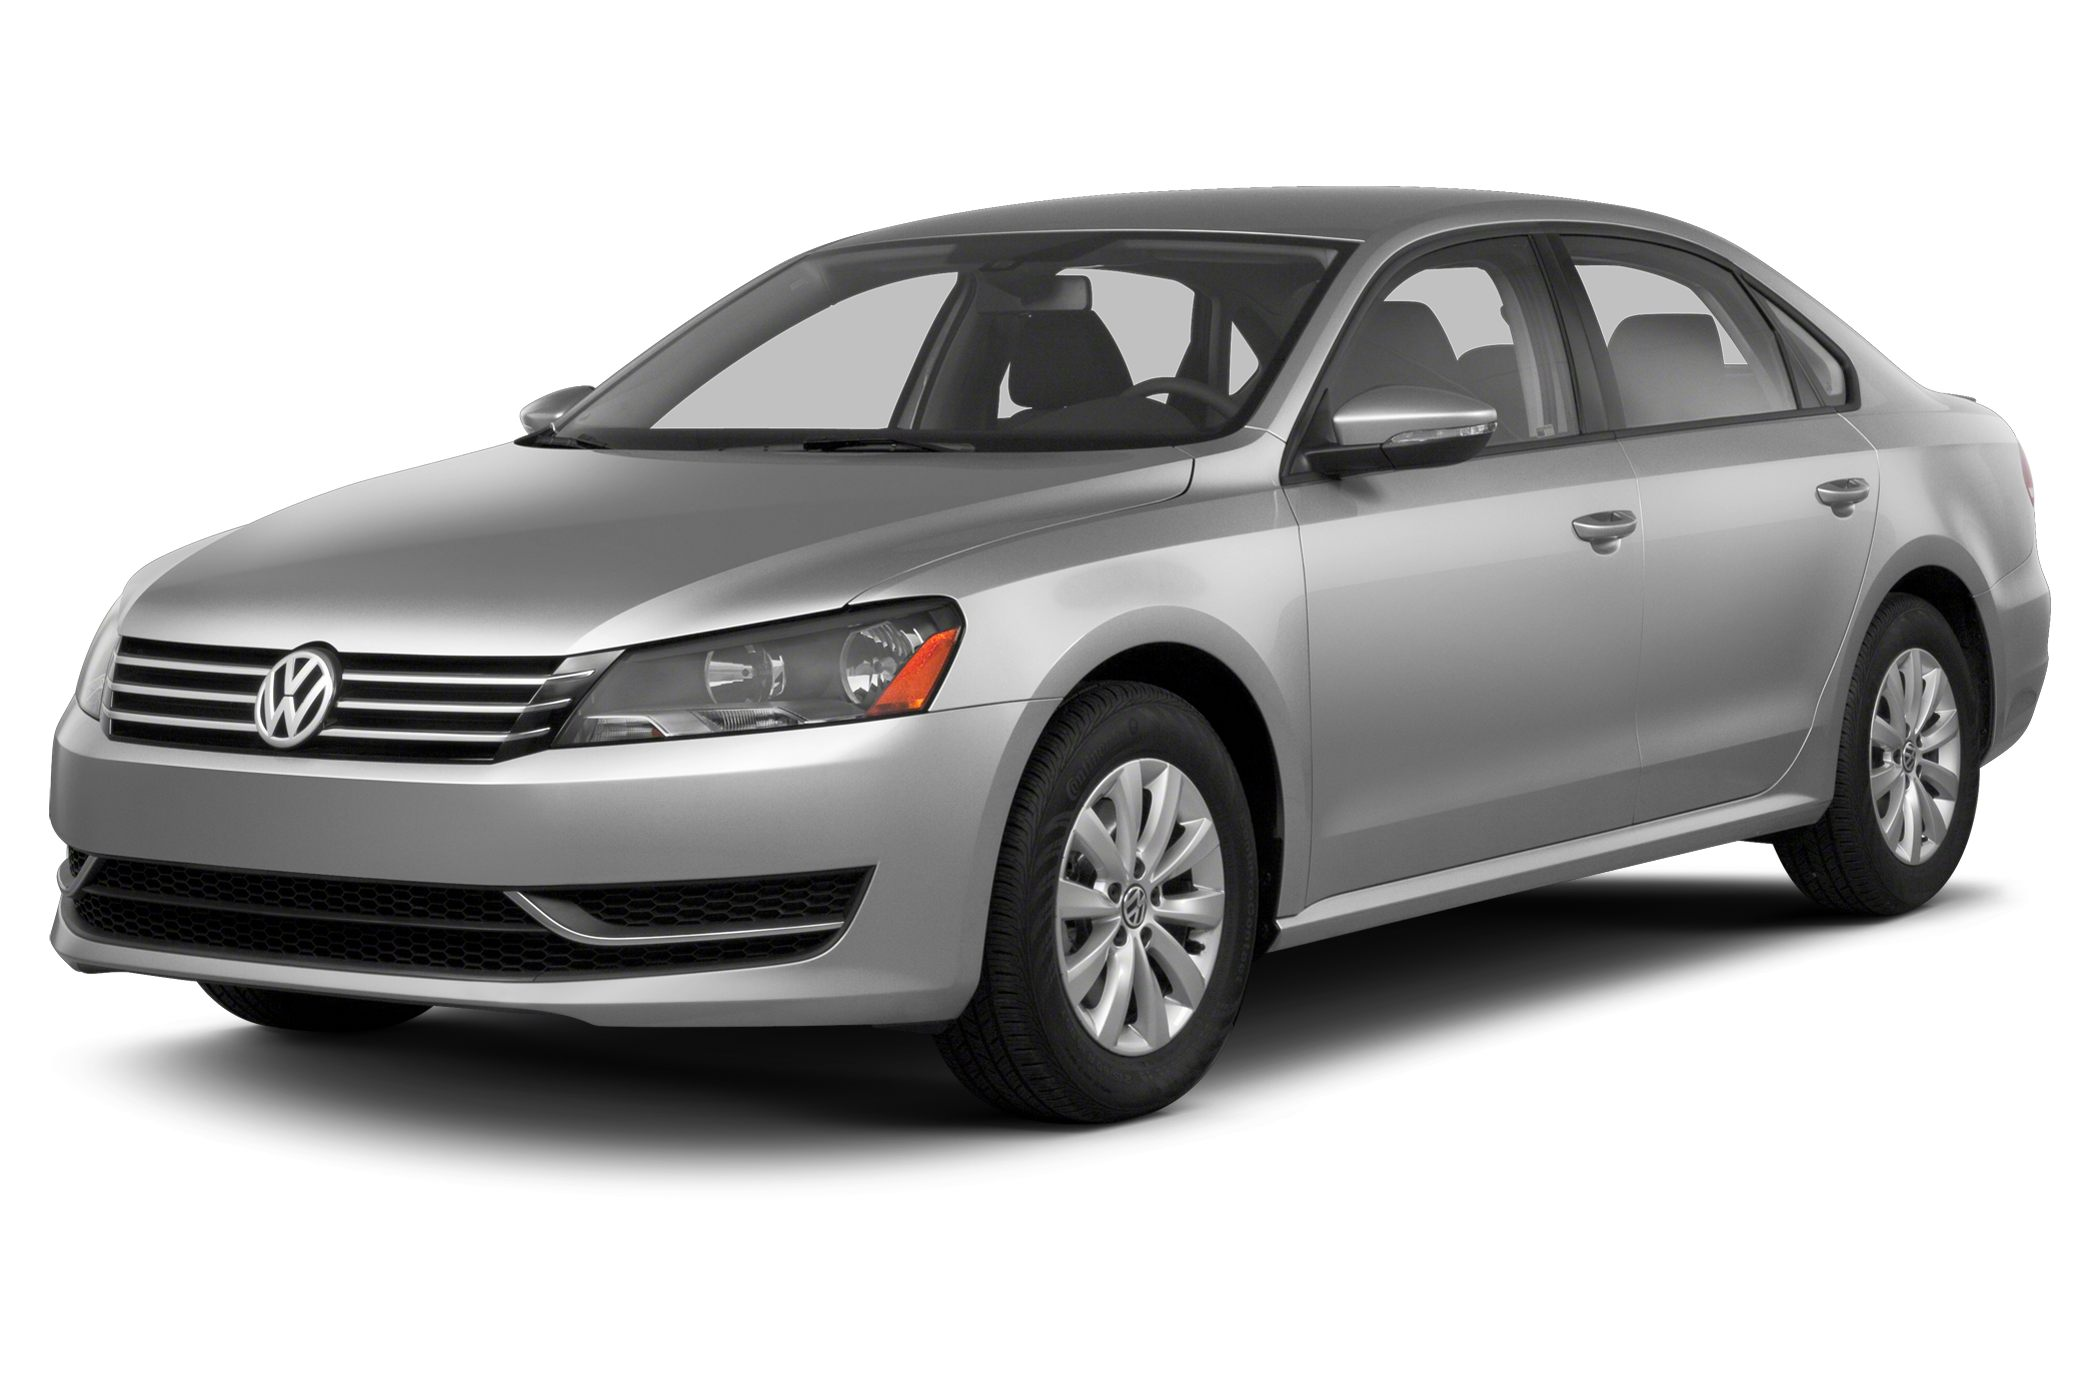 2013 Volkswagen Passat 25 S clean NON-SMOKER very well kept vehicle AUX Input alloys ABStraction